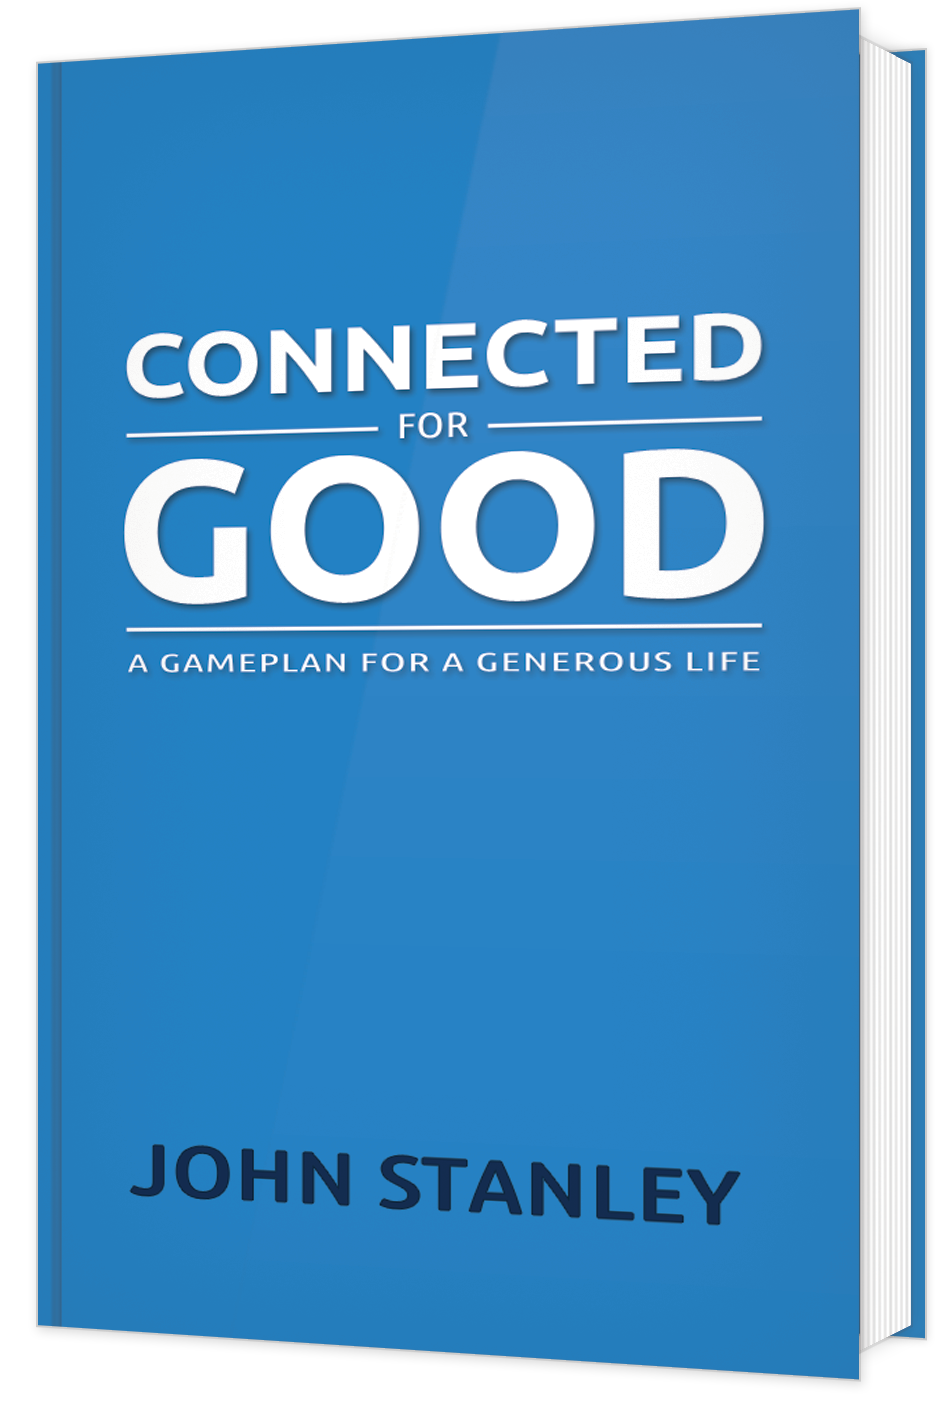 Connected for Good: A Gameplan for a Generous Life